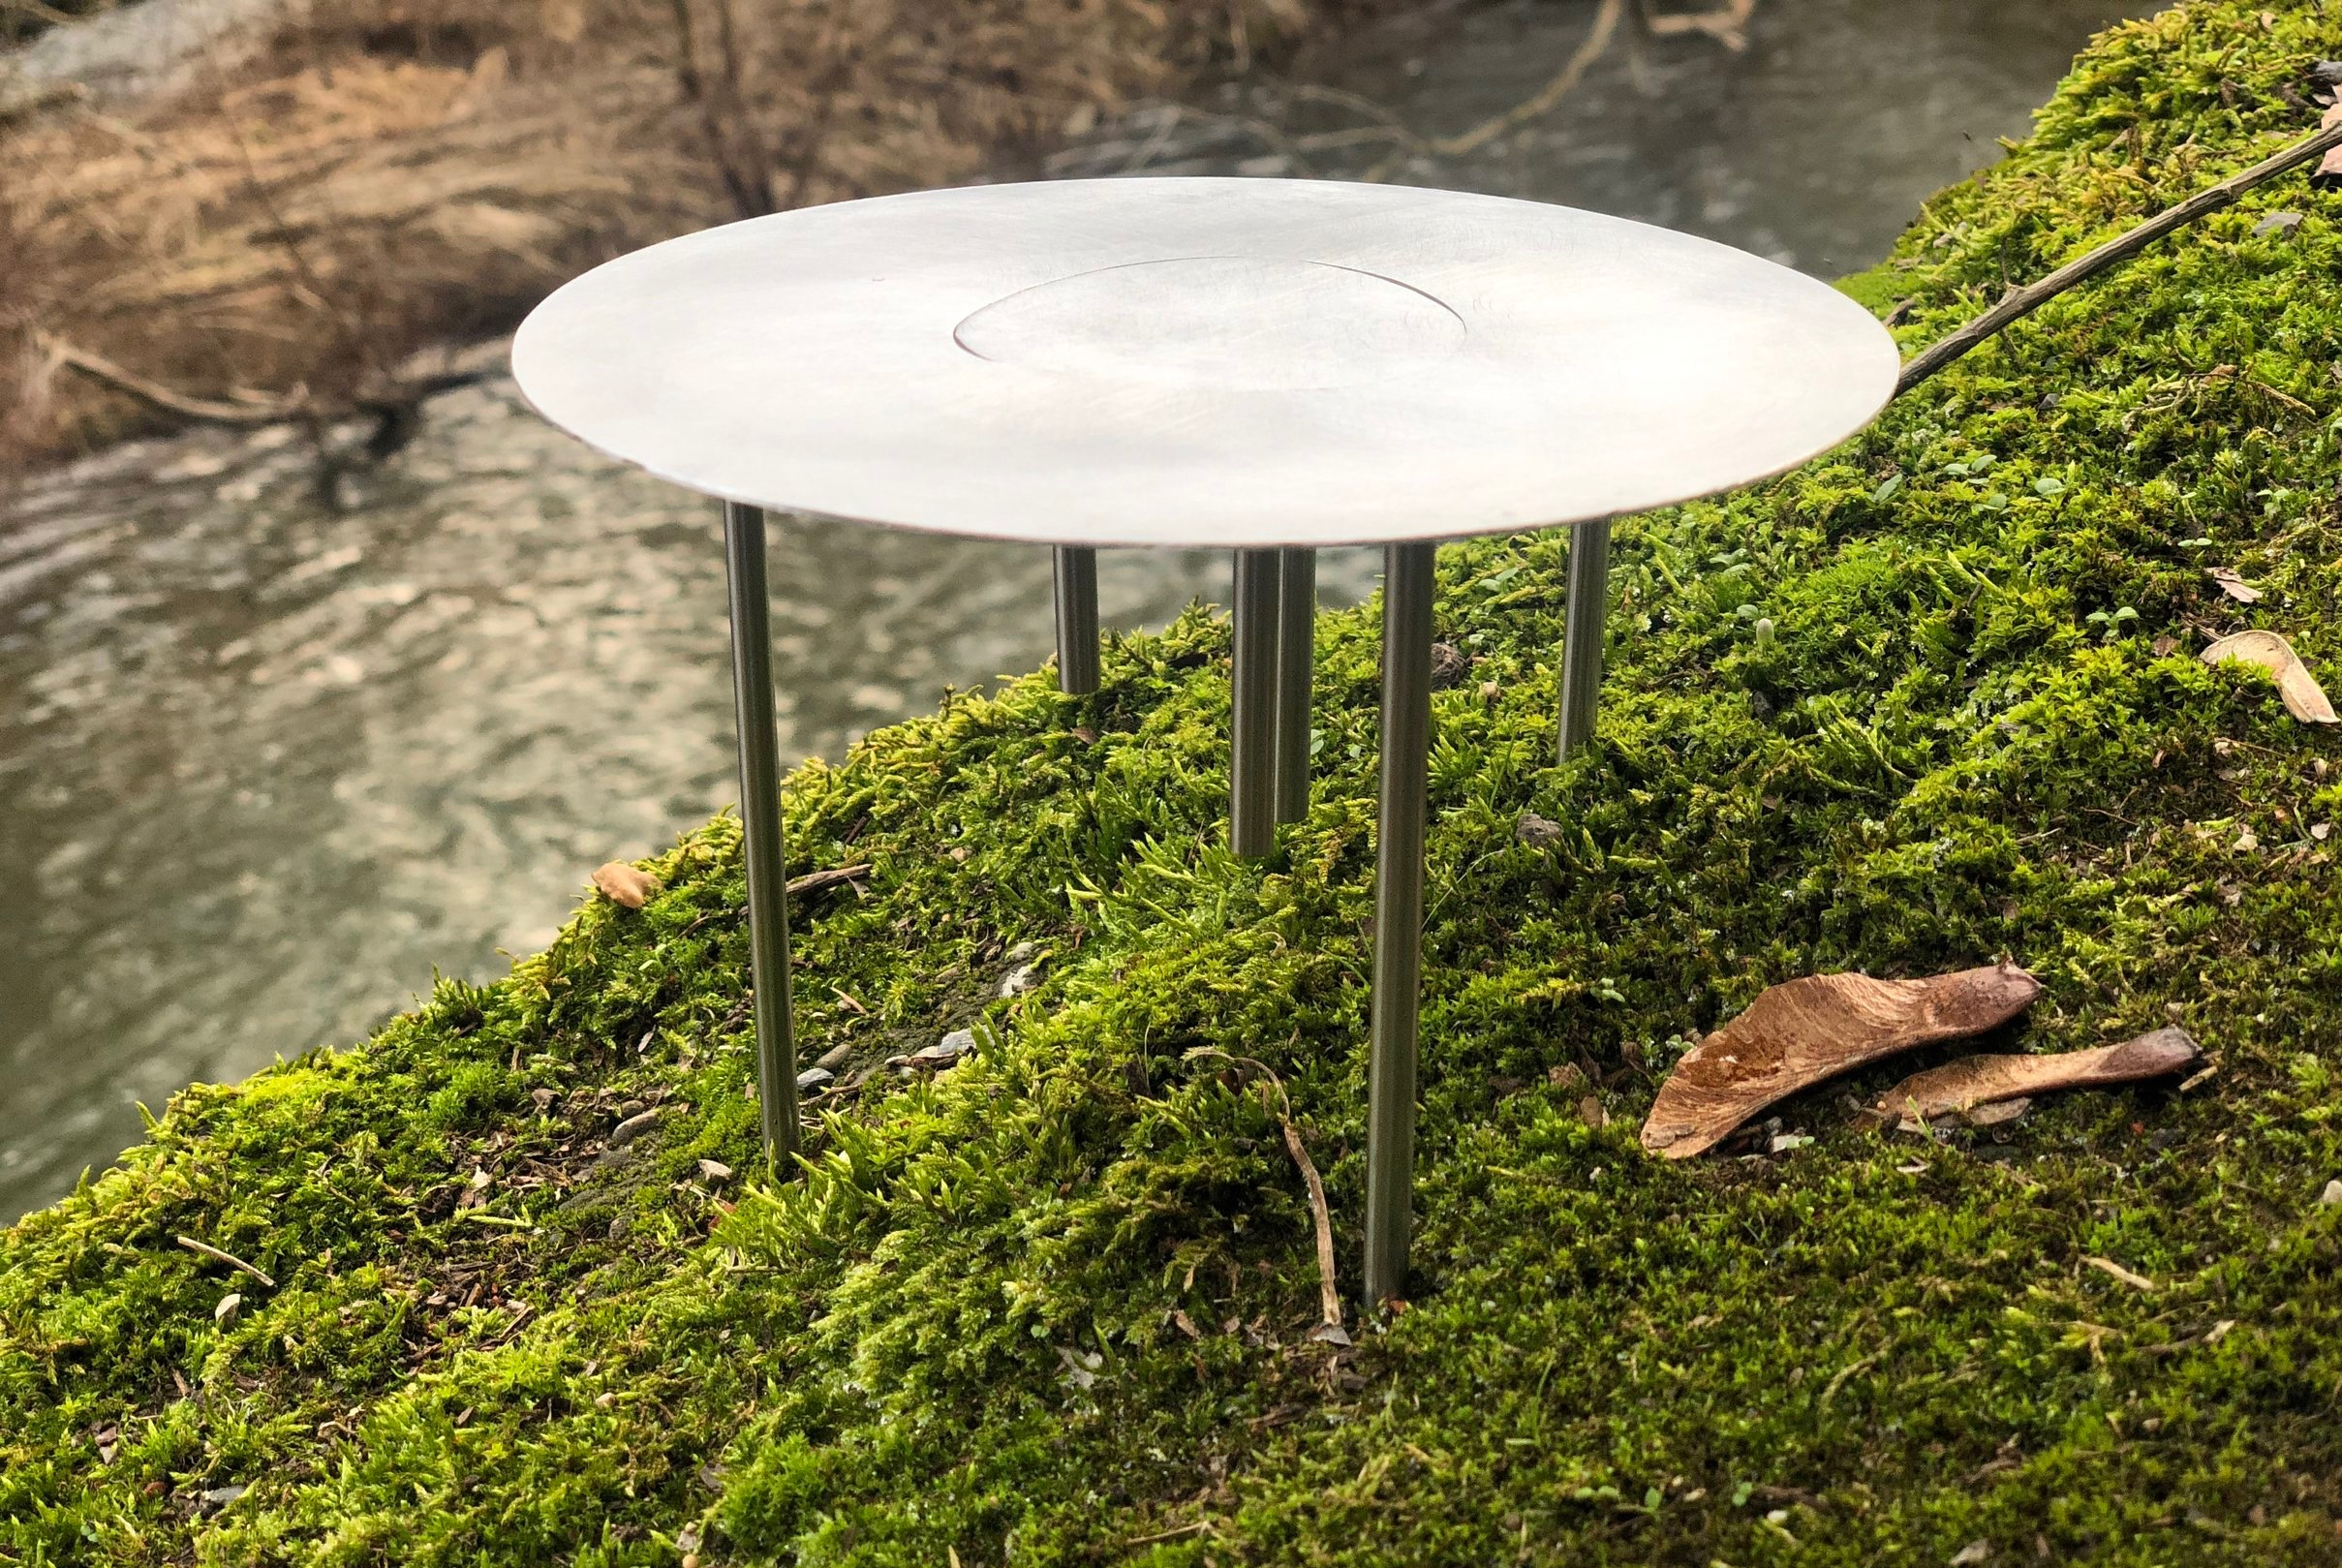 a table made for hills in nature